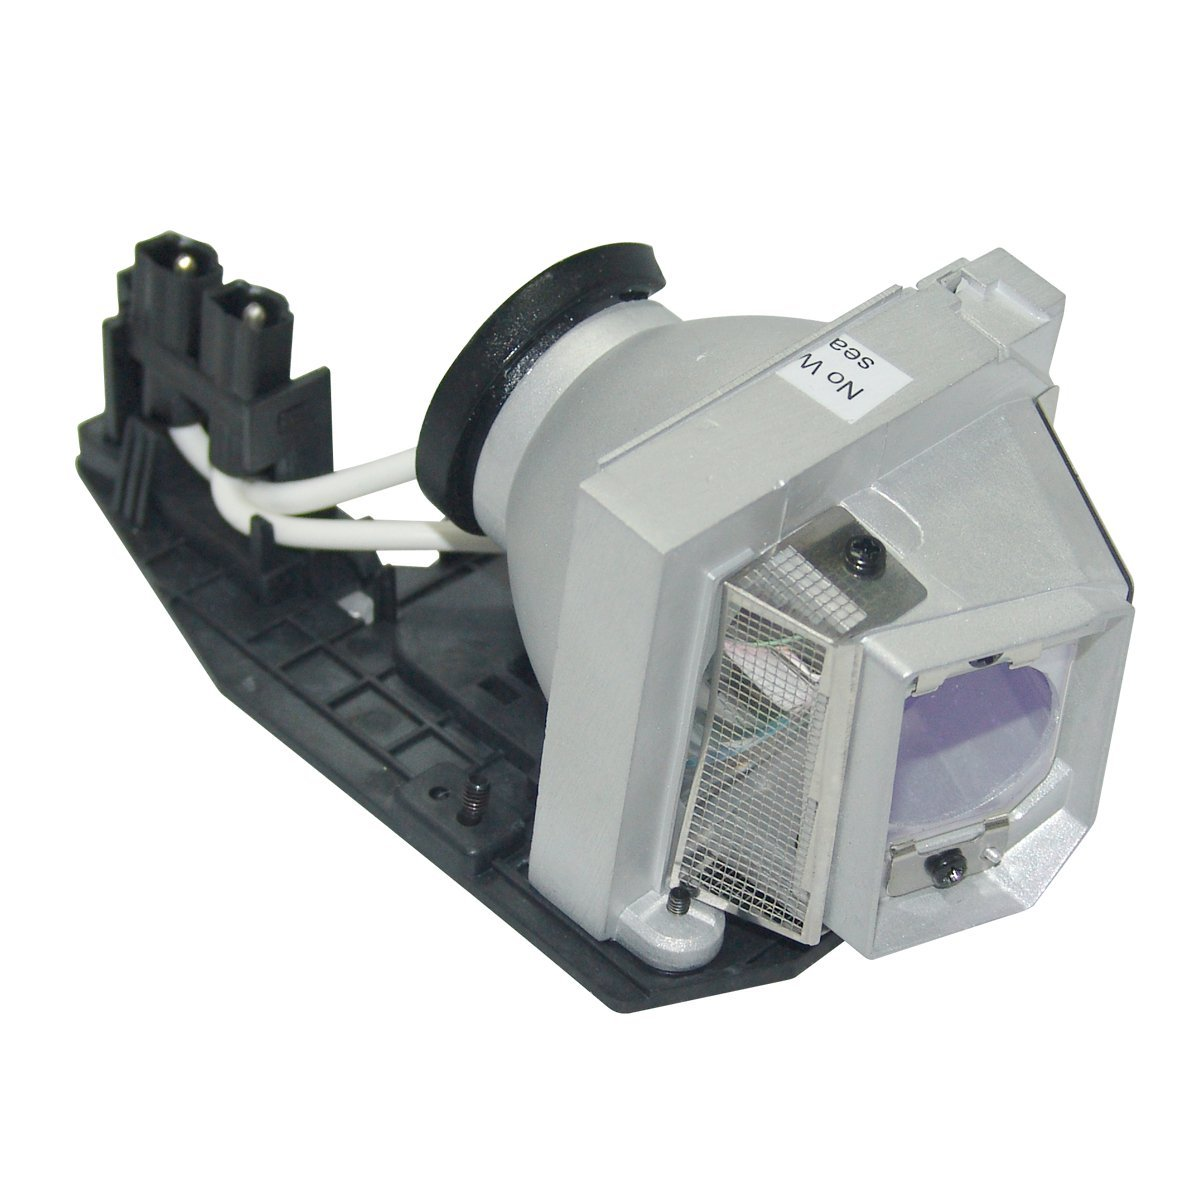 ФОТО 330-6581 KFV6M 725-10229 725-10203 Lamp for DELL 1510X 1610HD Projector Bulb Lamp with housing